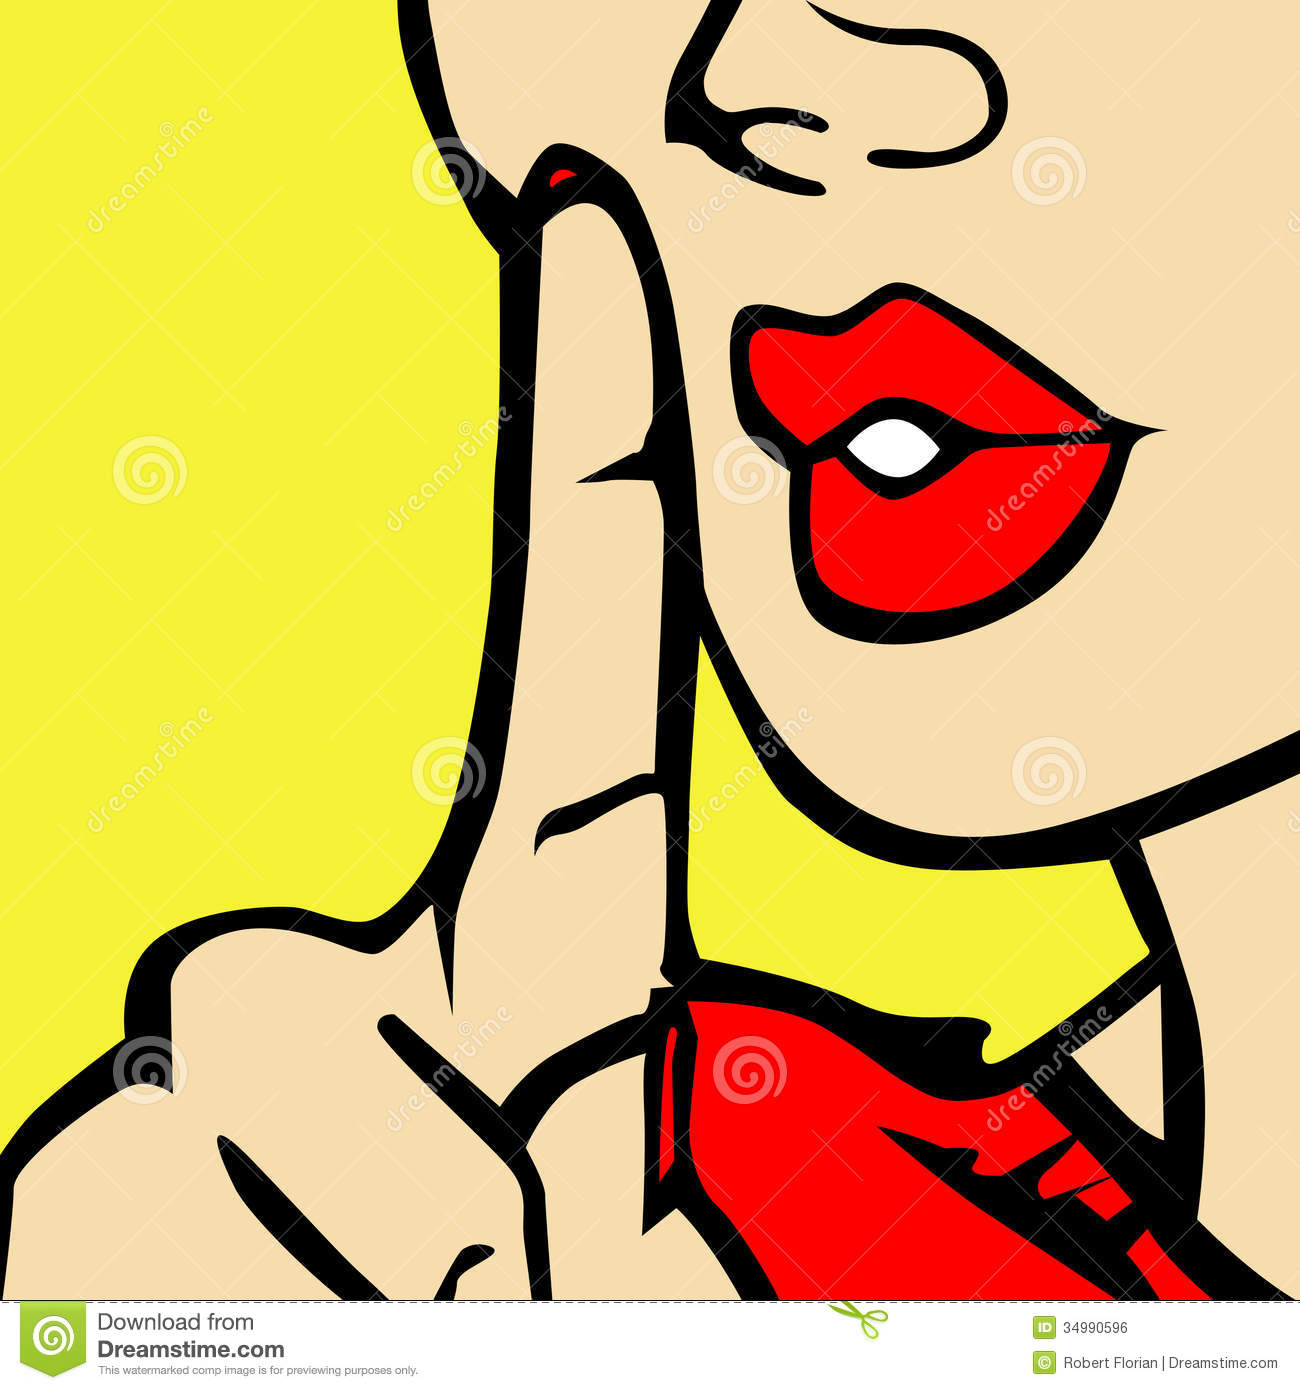 Clip Art Shhh Clipart shhh finger clipart kid silence woman asking for silence